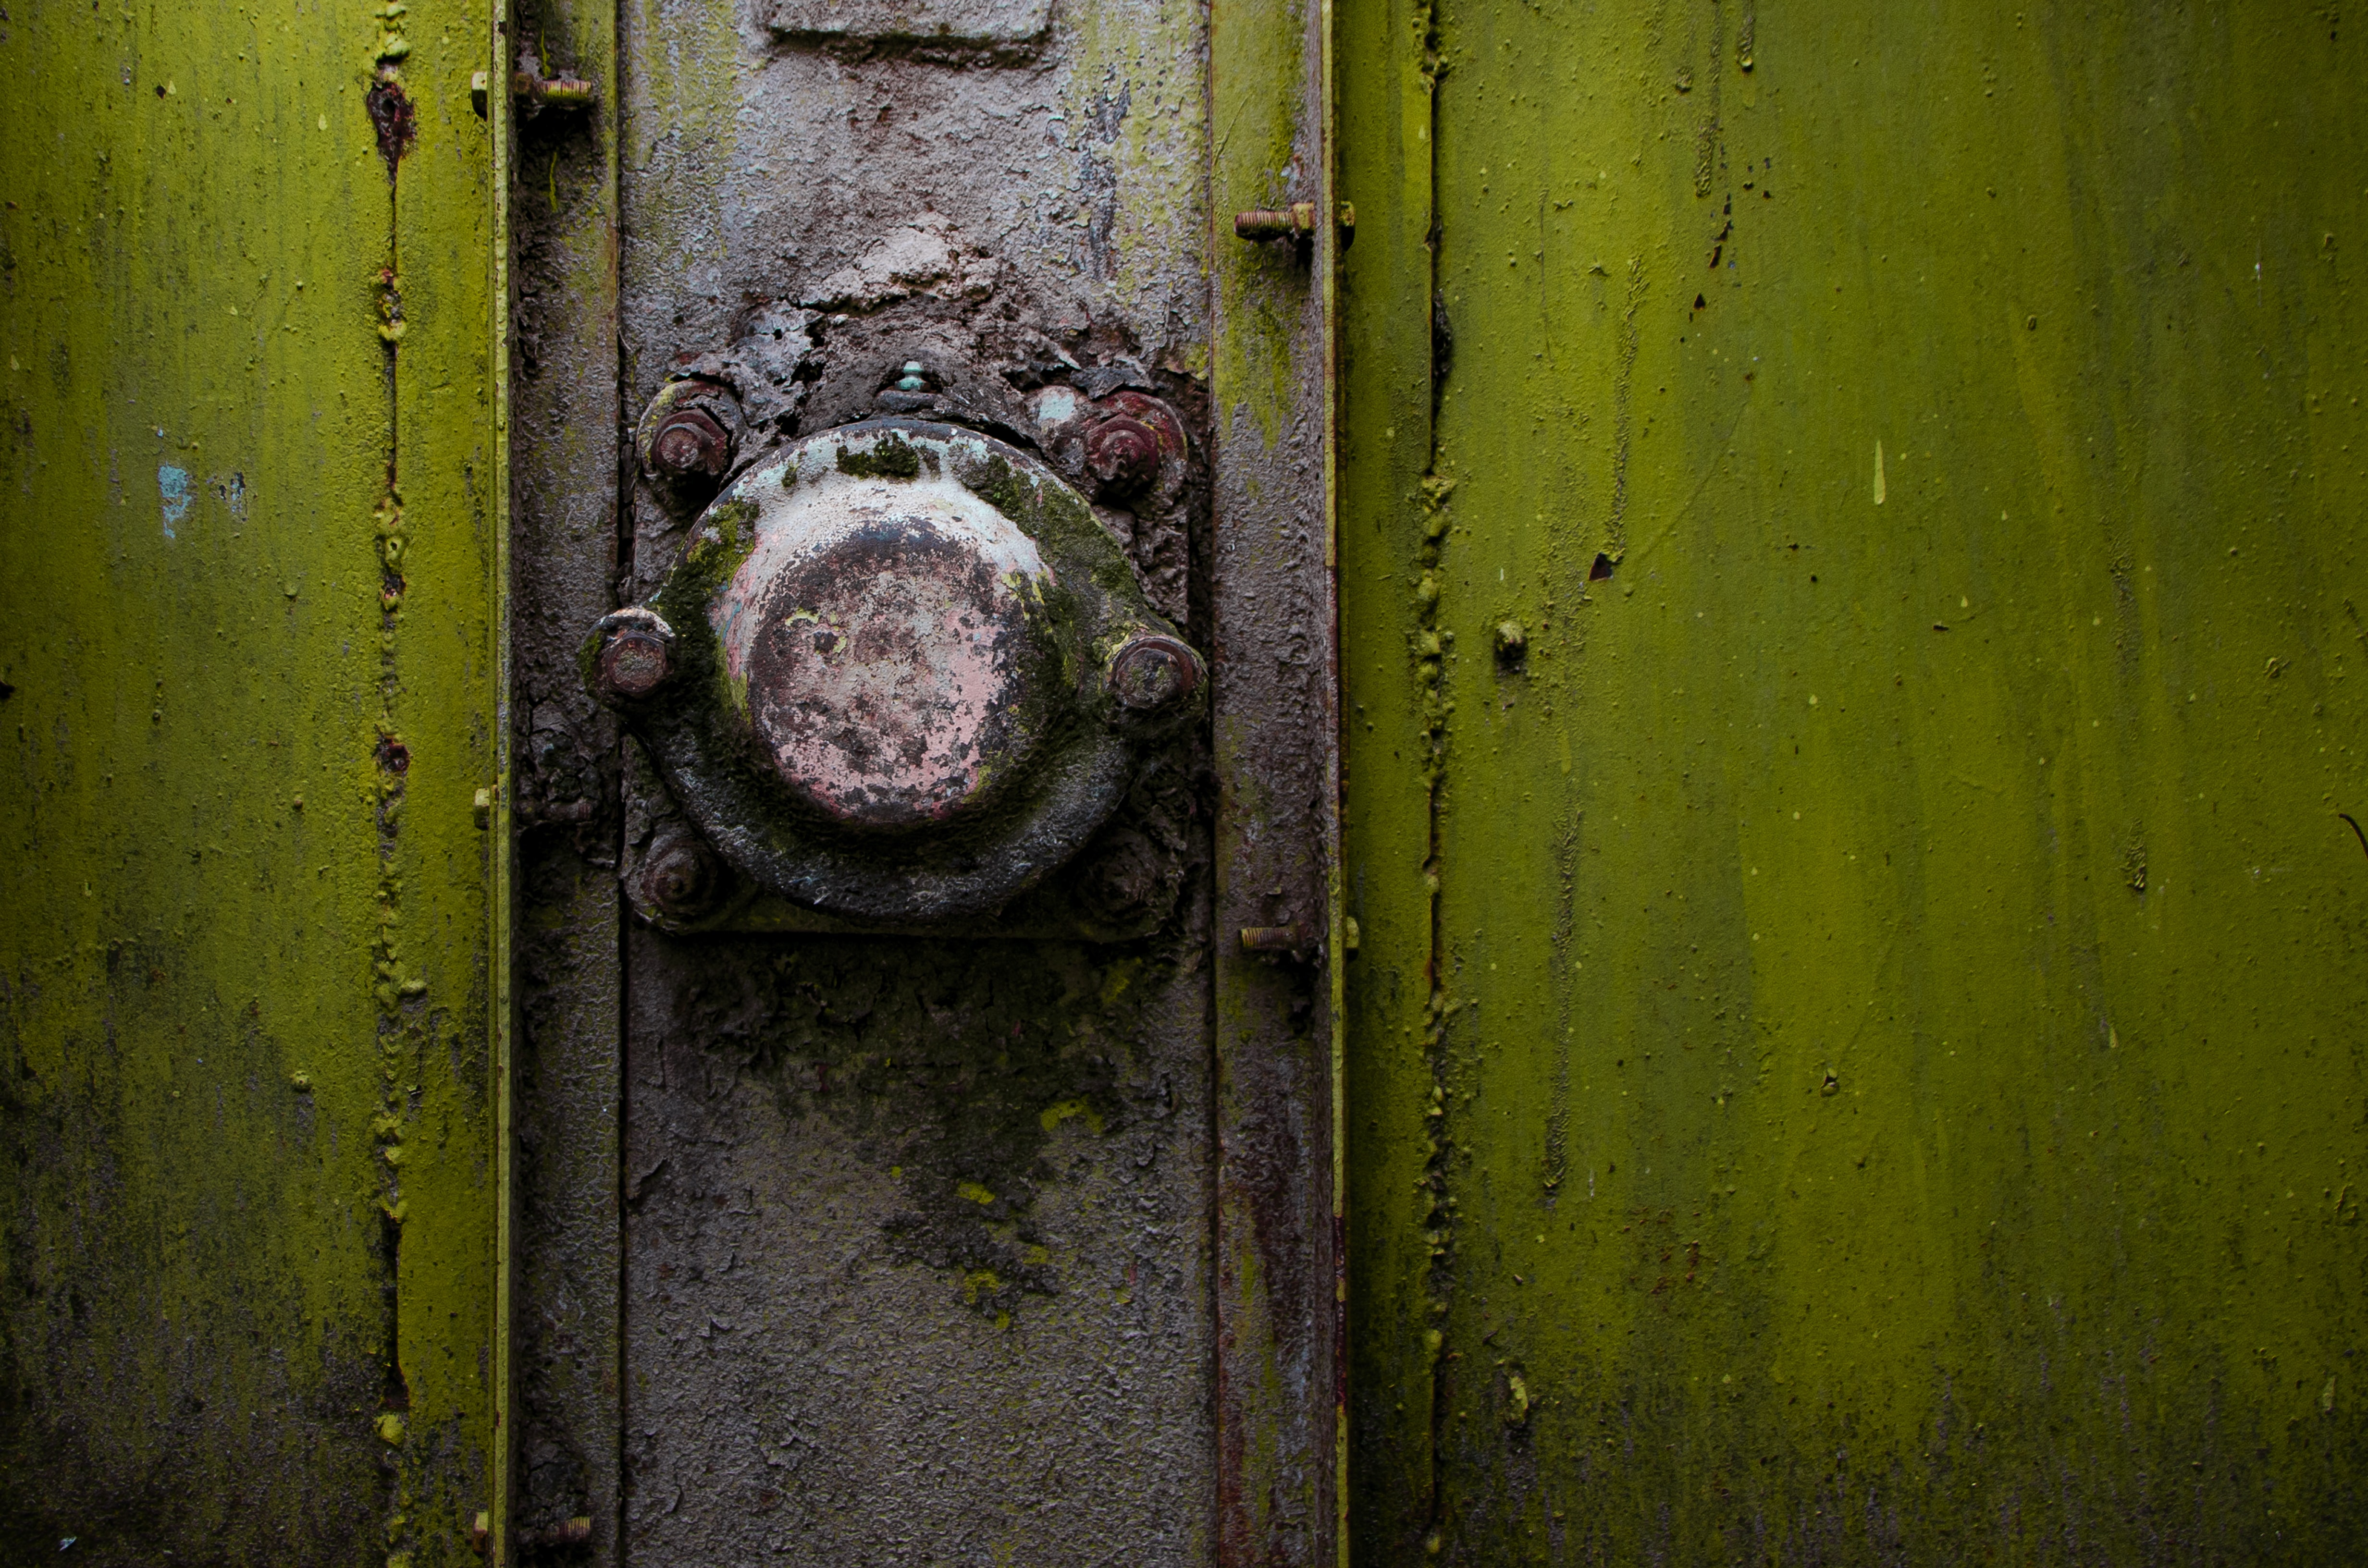 A close-up of a rusty metal knob on a green strongbox